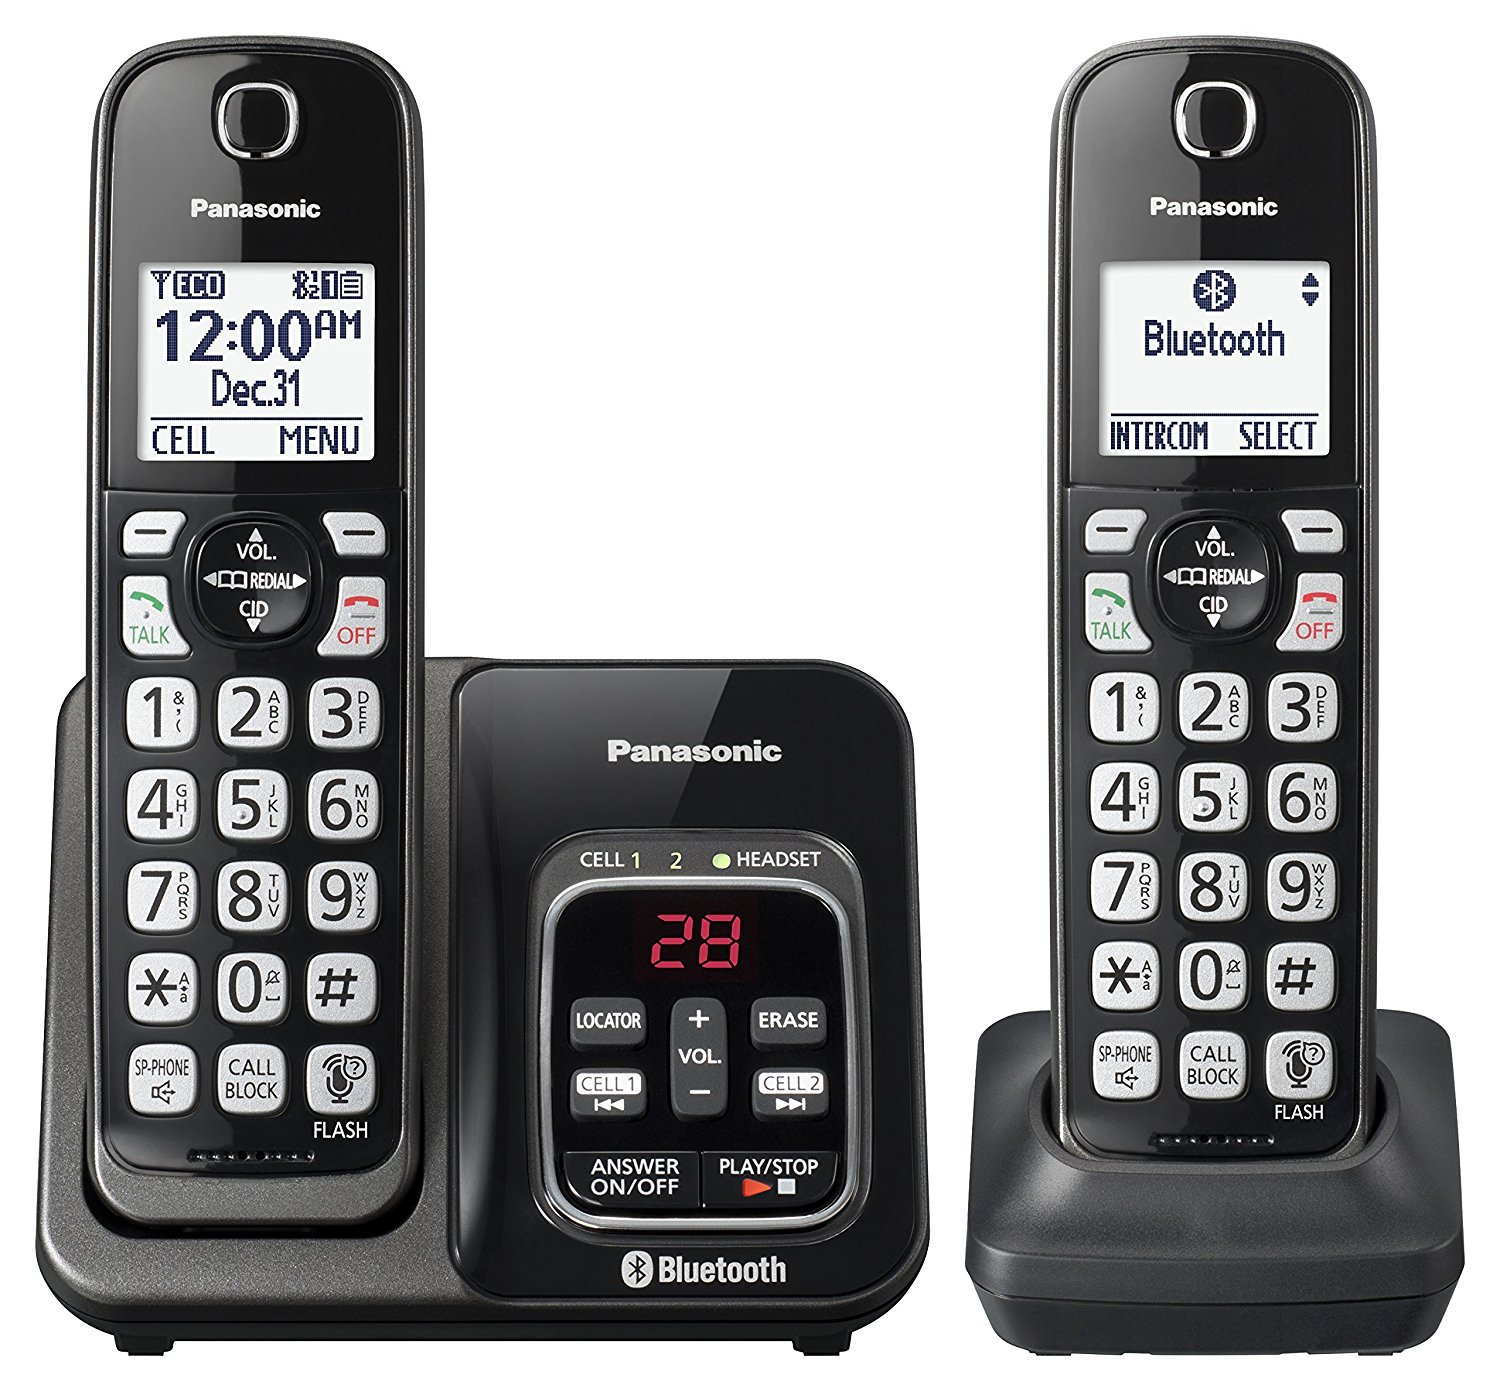 Panasonic KX-TGD562M Link2Cell Bluetooth Cordless Phone Voice Assist Answering Machine - 2 Handsets (Certified Refurbished)